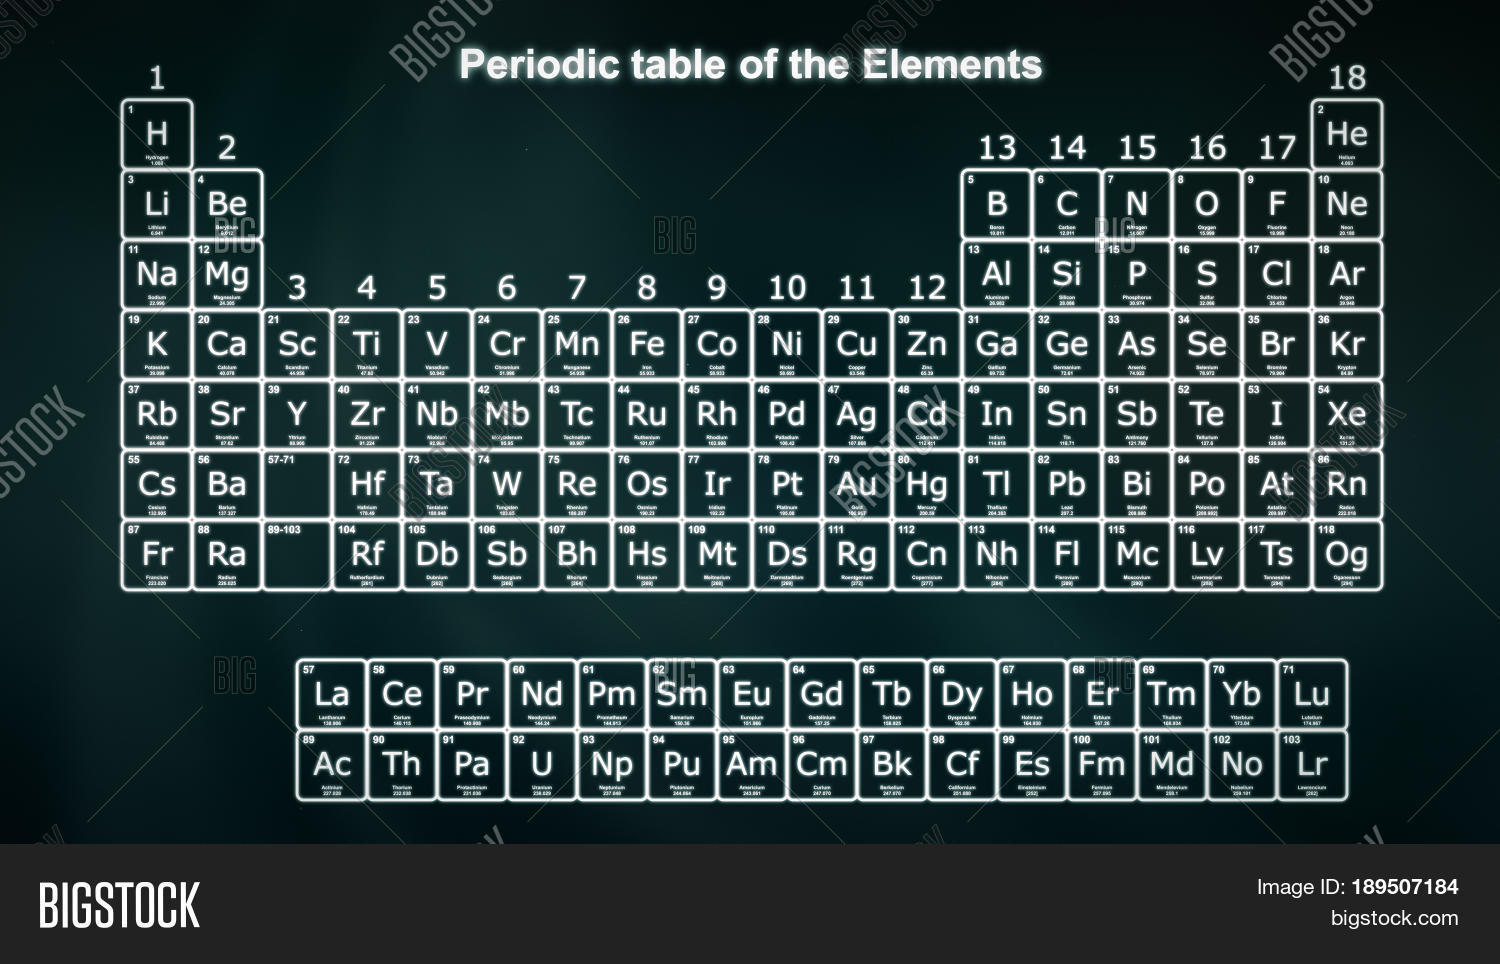 Complete periodic table elements image photo bigstock - Complete periodic table of elements ...